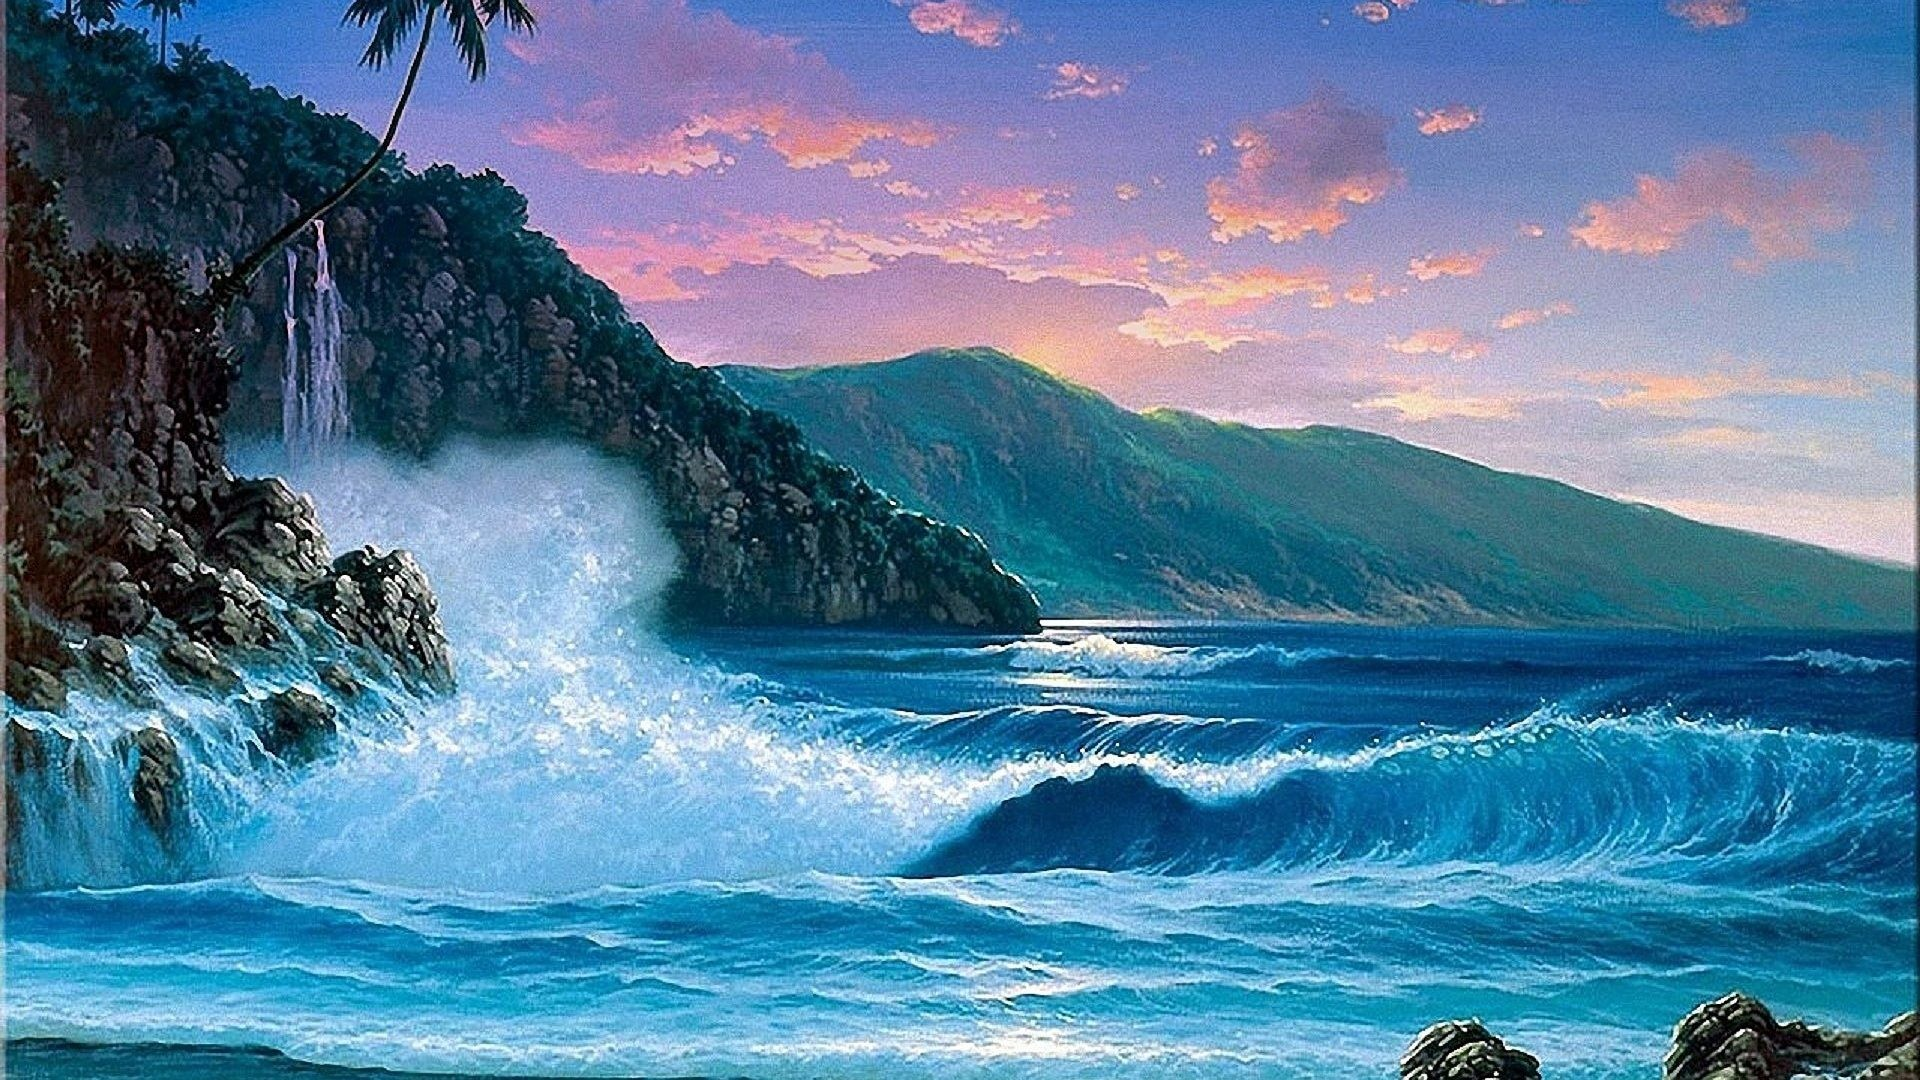 Ocean Wallpapers High Resolution (71+ Images